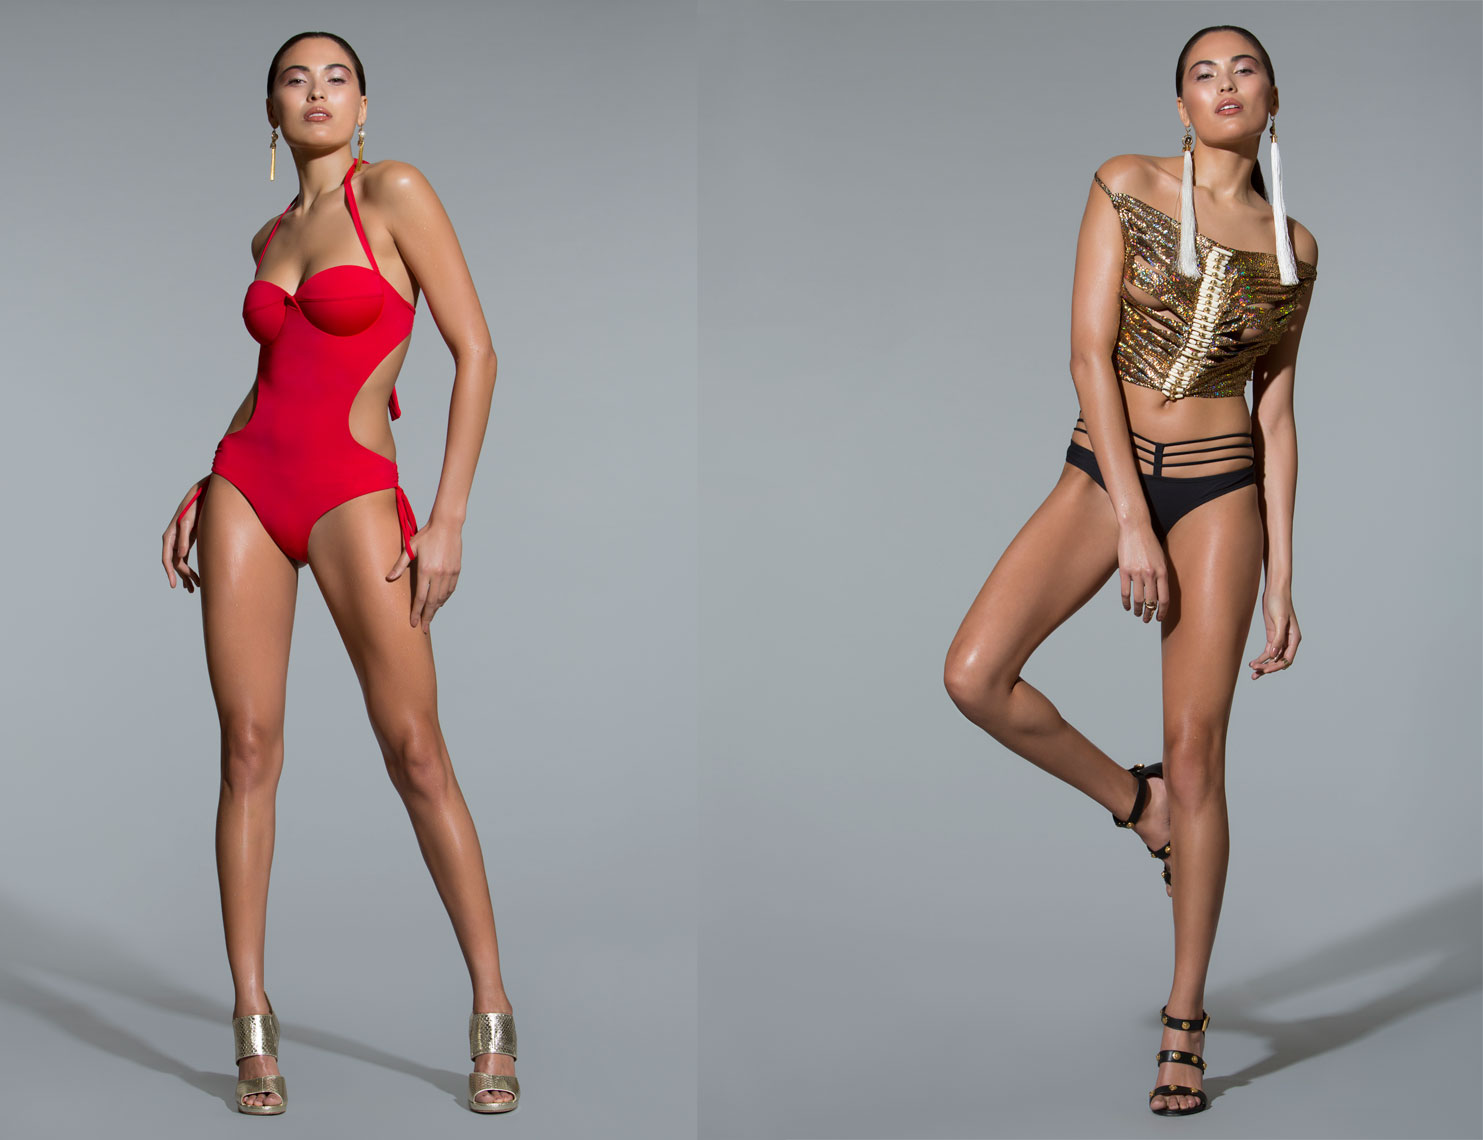 NYC-Swimwear-Fashion-Photography-Advertising-Catalog-Editorial